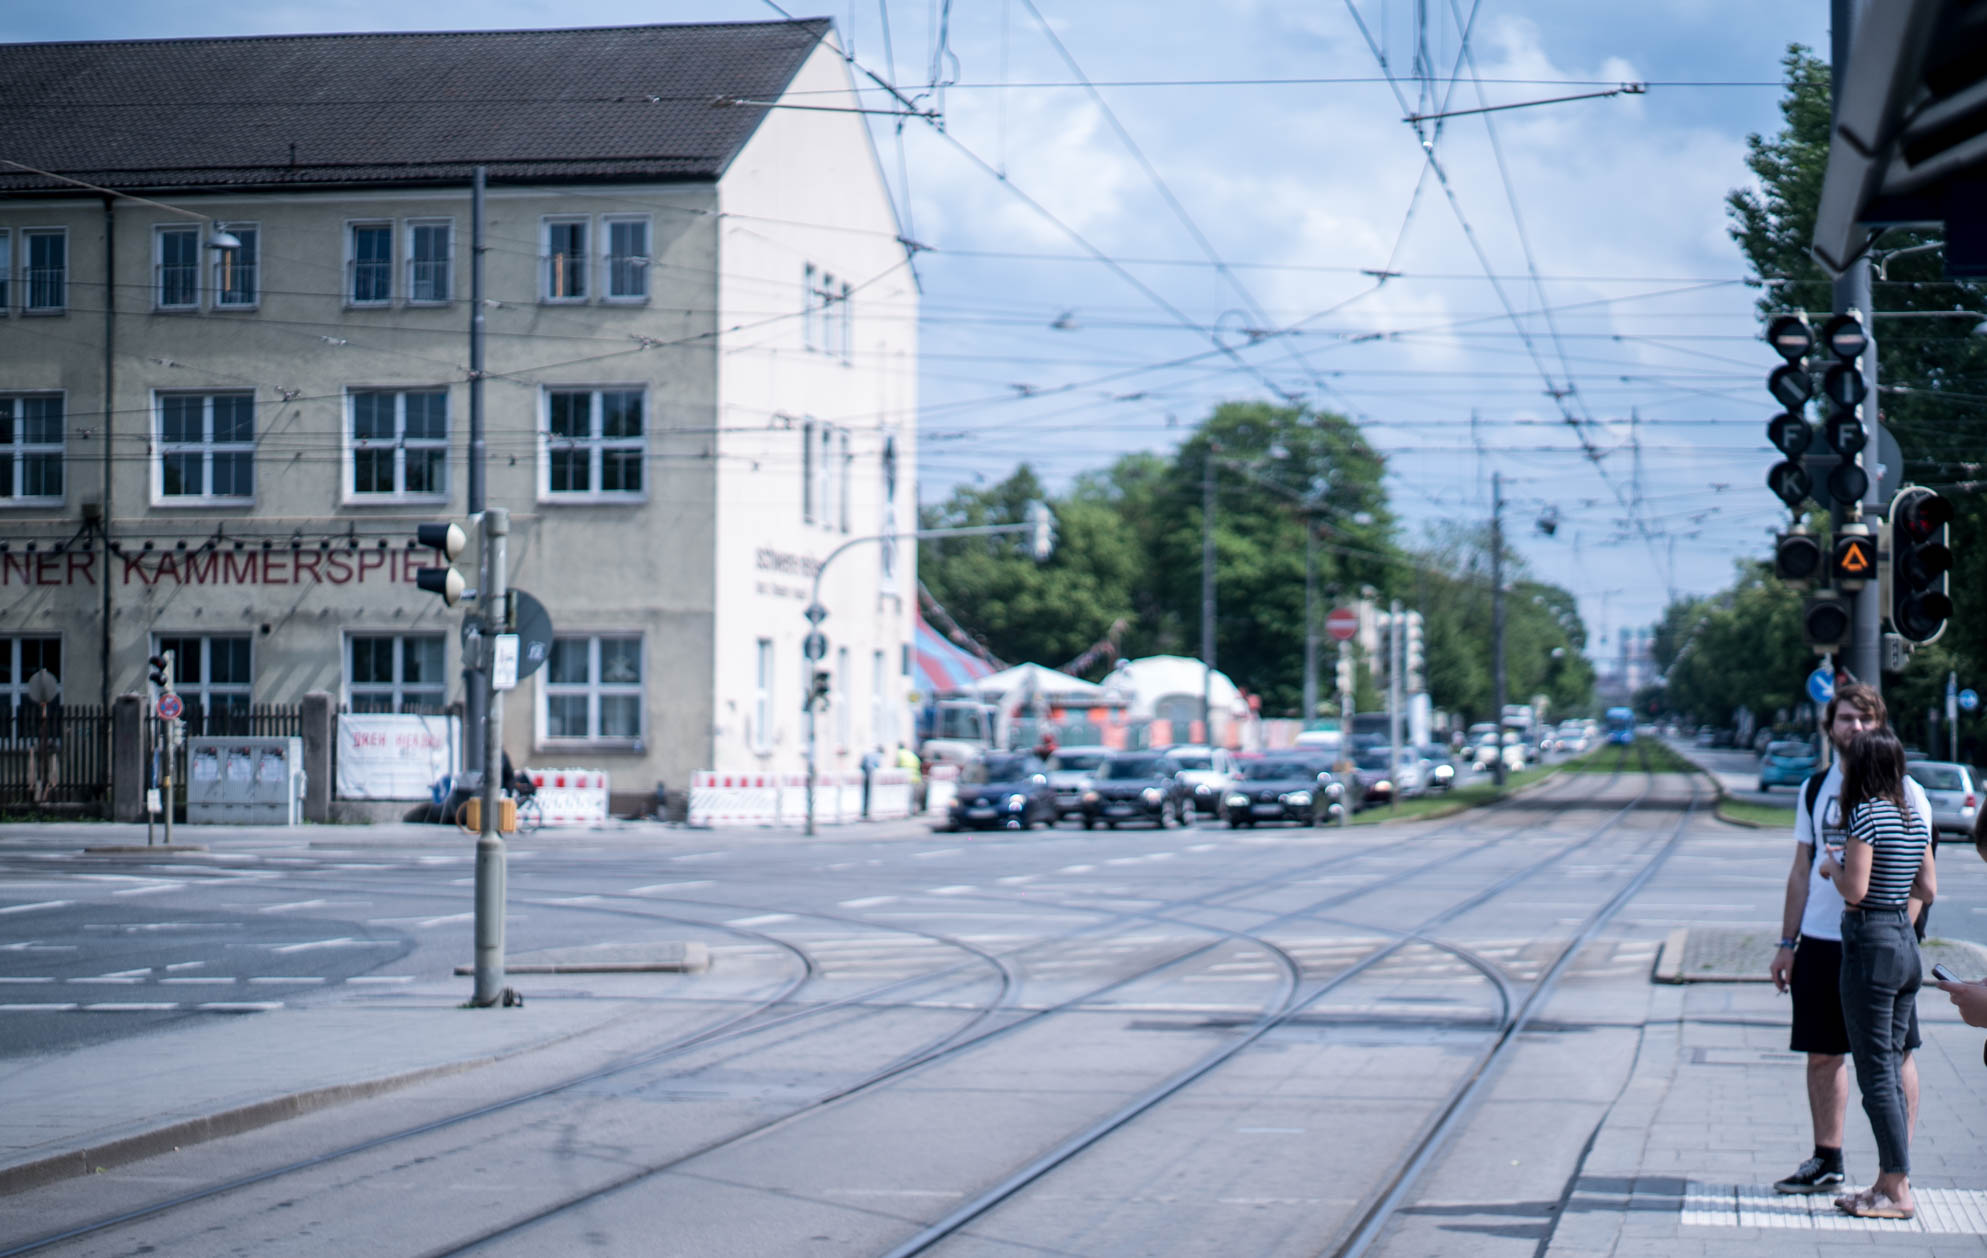 Photo by Pascal Sommer - Munich has some beautiful reserved track